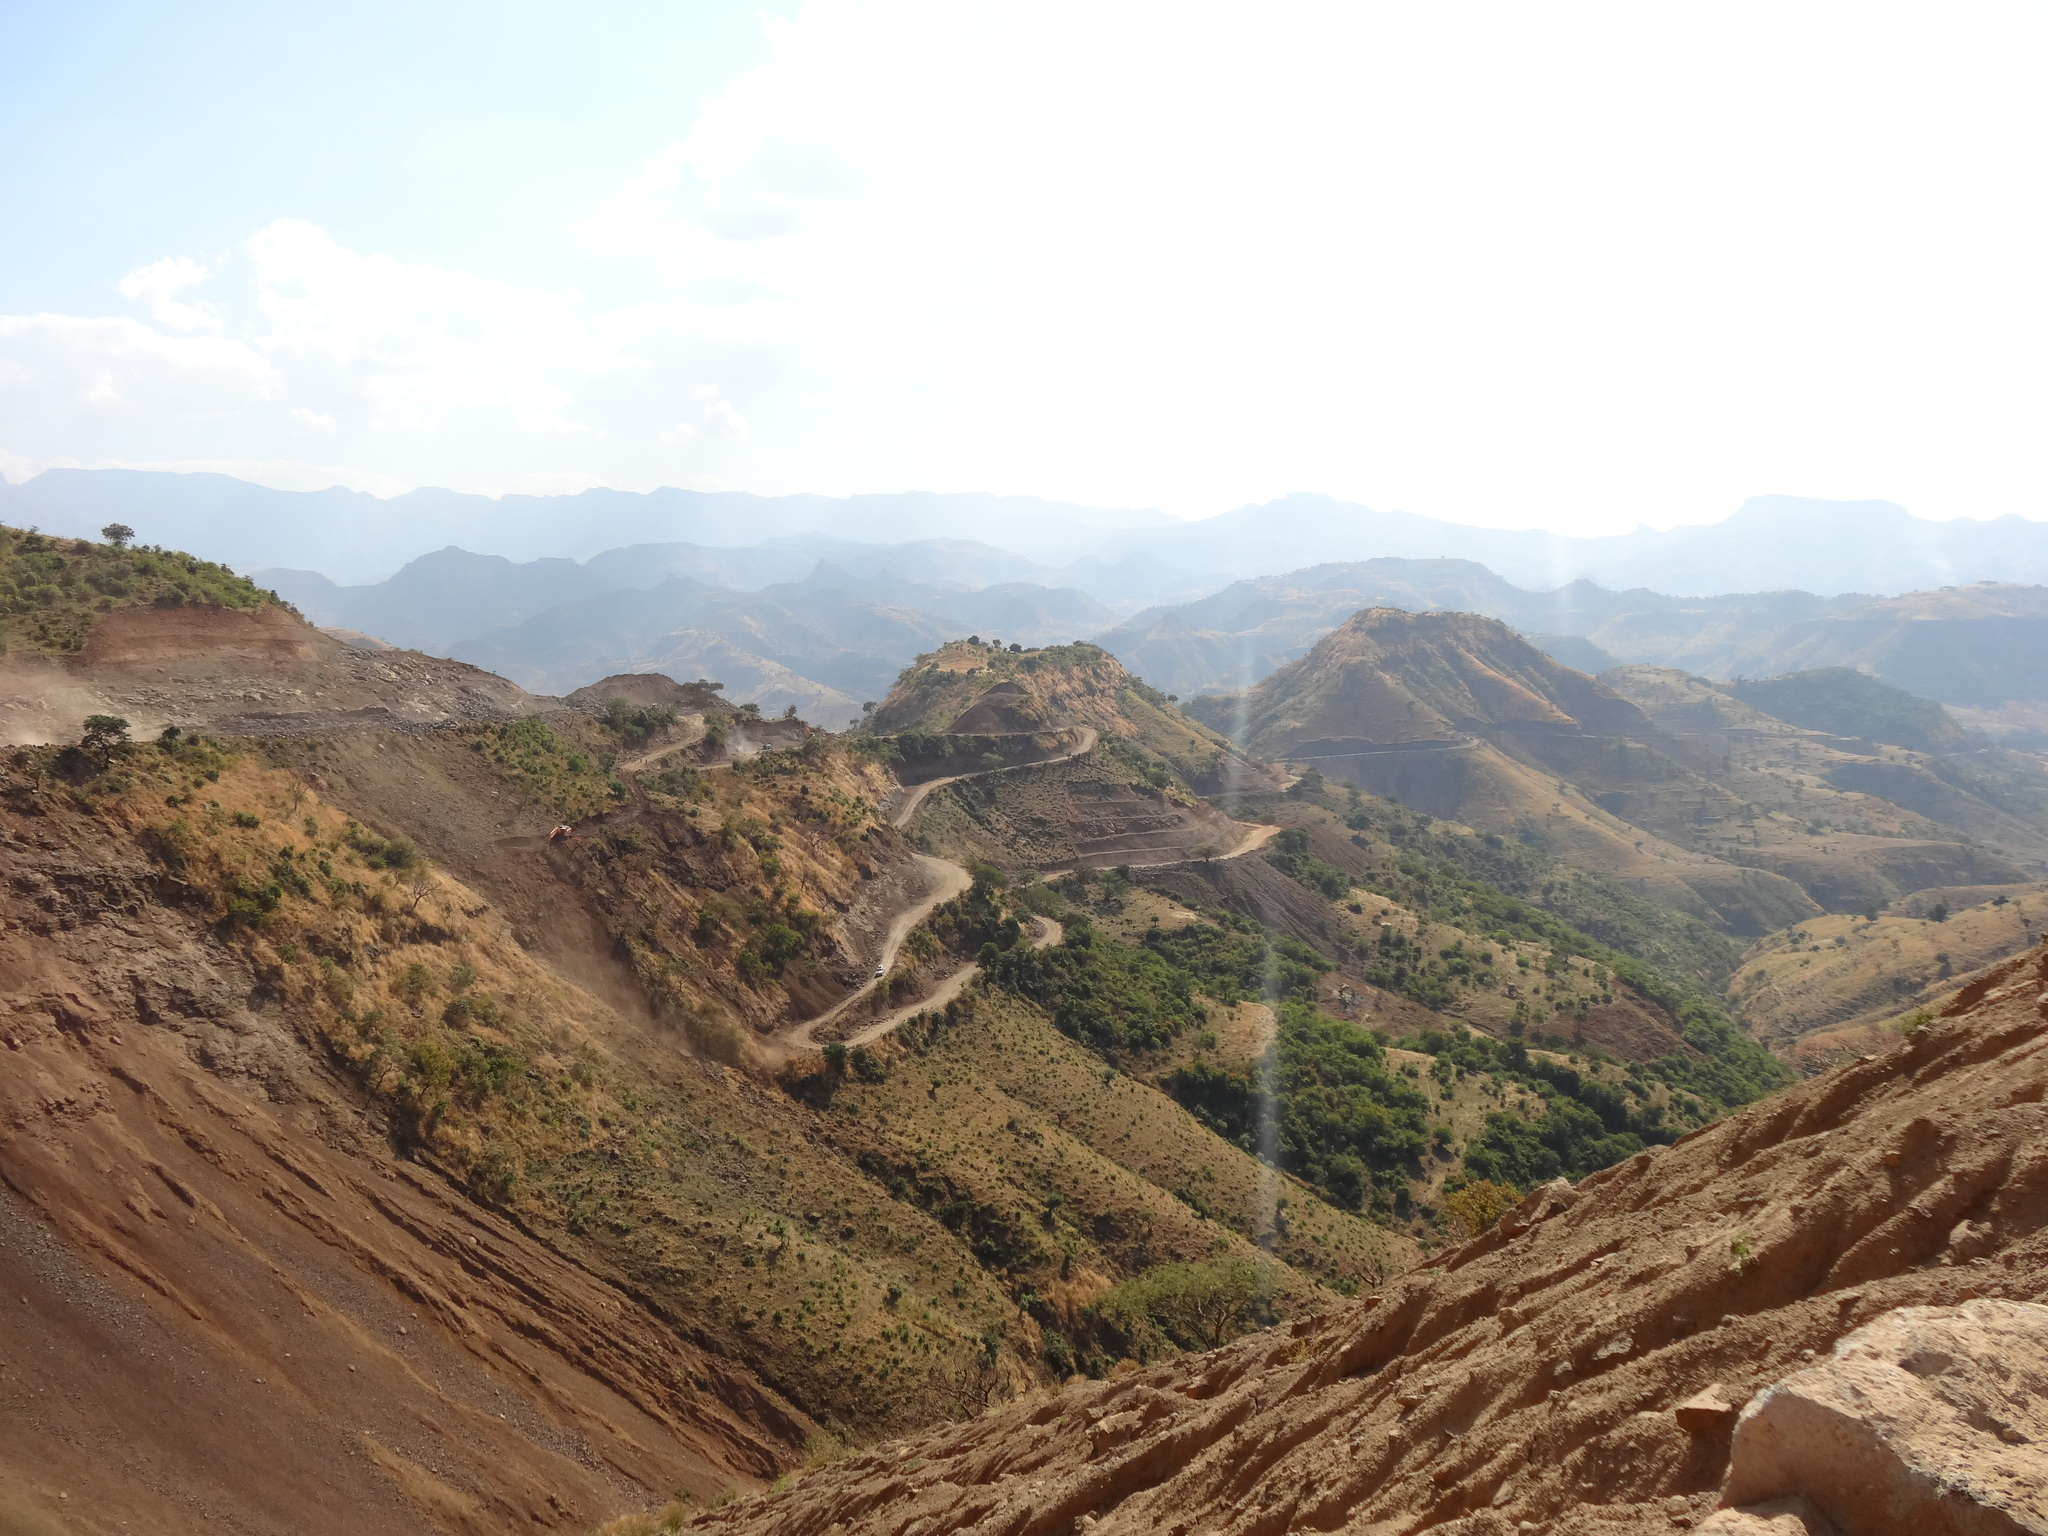 Ethiopia 2014: A Route of Biblical Proportions